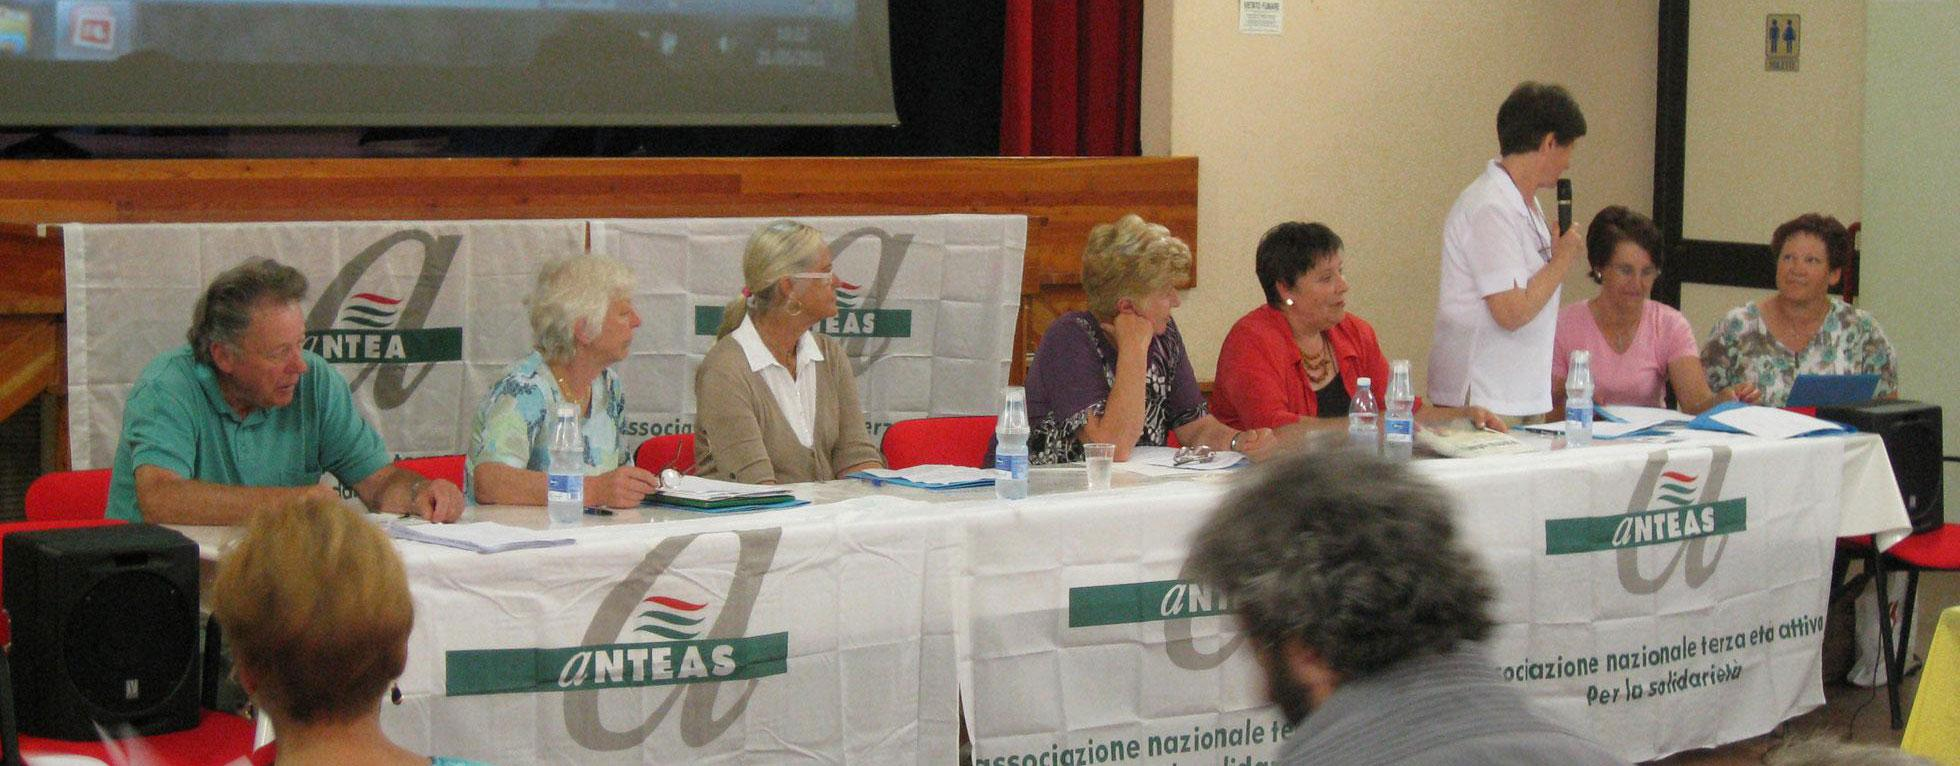 Conference organized by Anteas Friuli